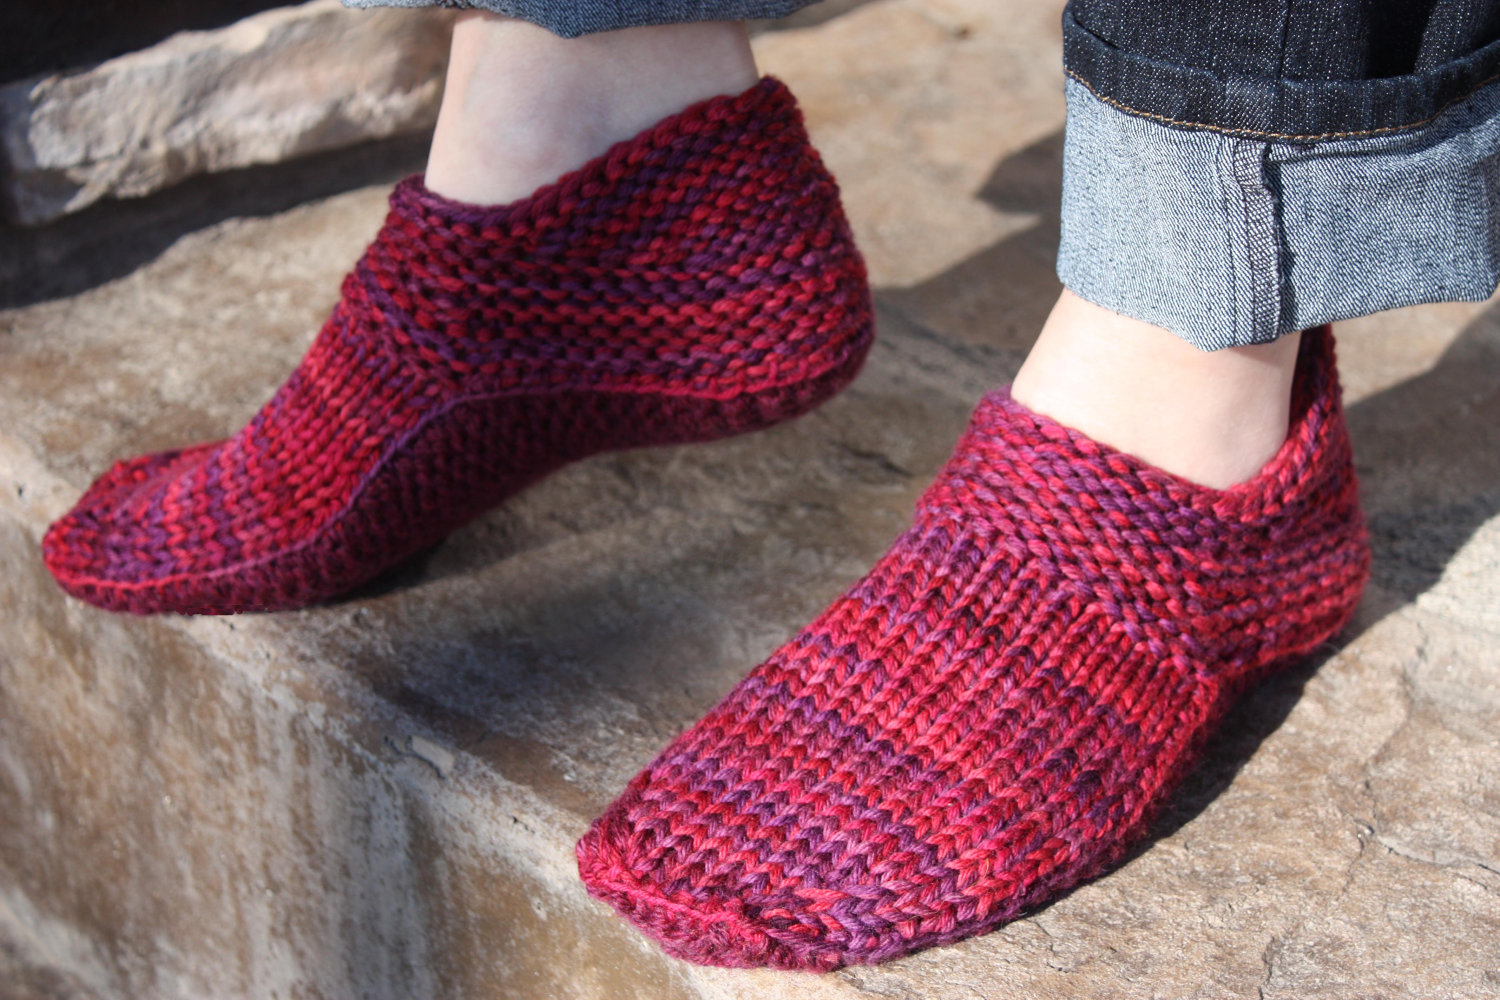 Free Knit Slipper Pattern Knitted Slippers To Keep Your Feet Warm And Cozy Crochet And